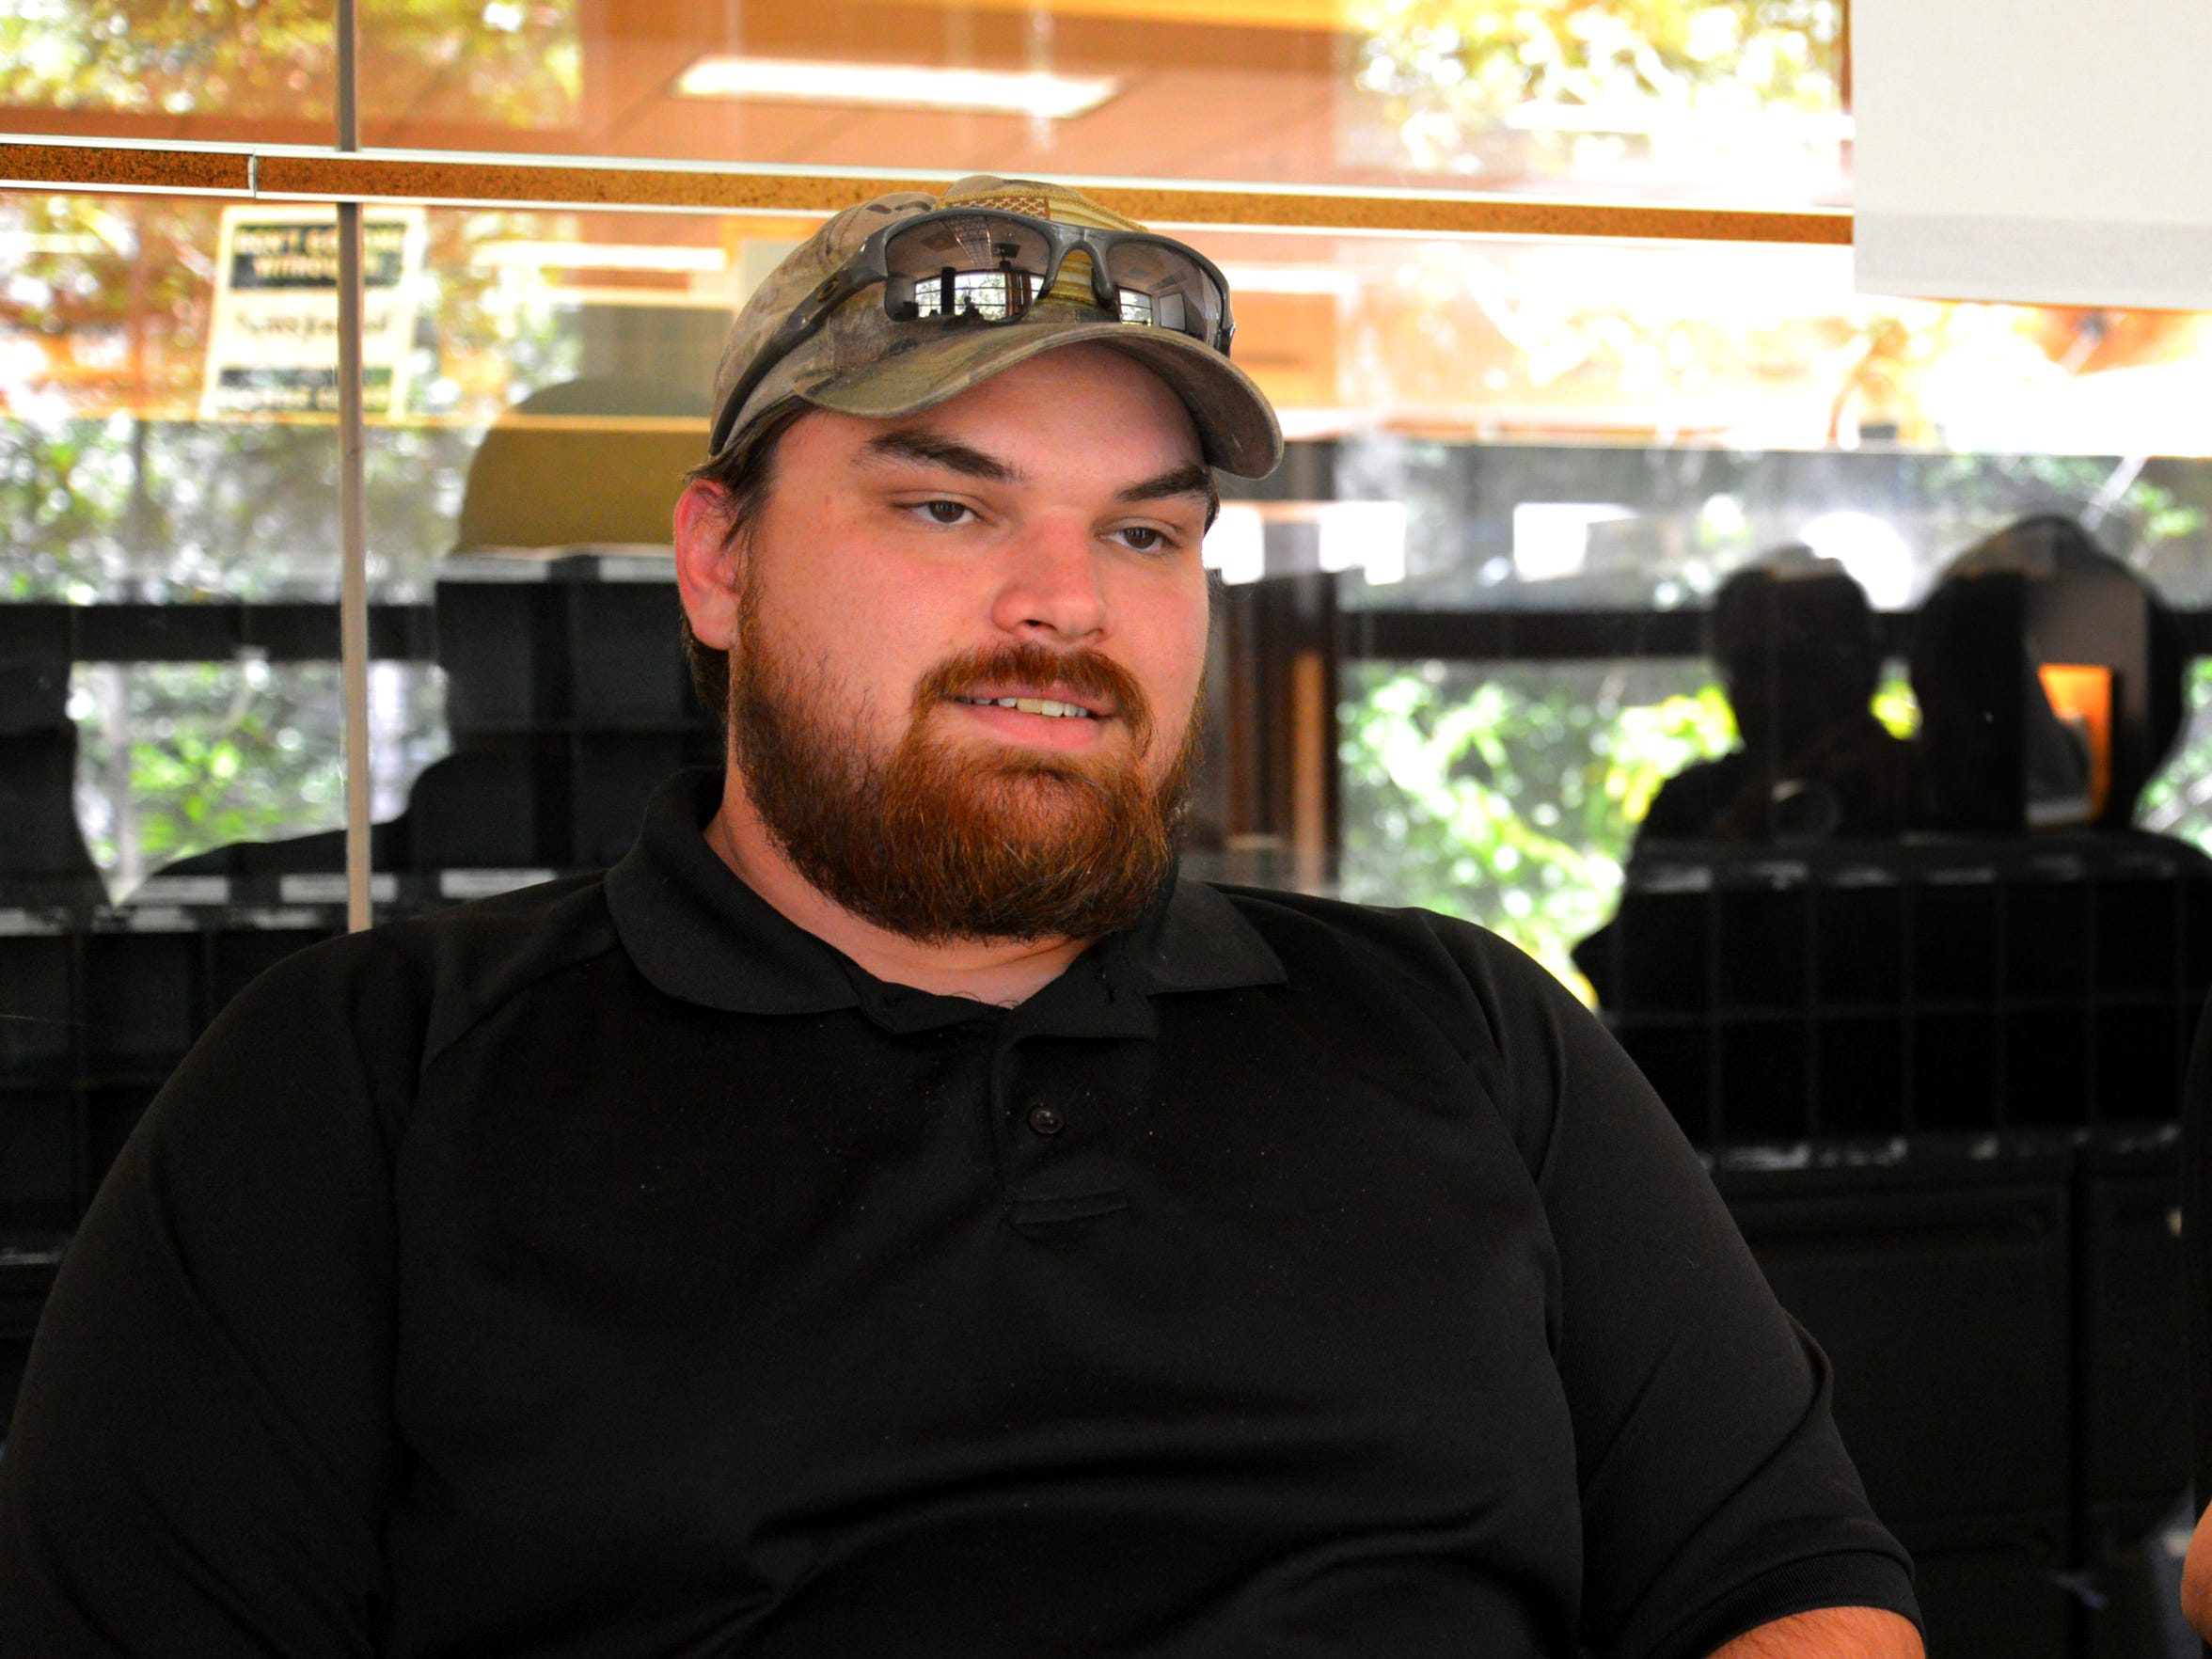 Ethan Wagner, veteran who lives in Palm Bay, received